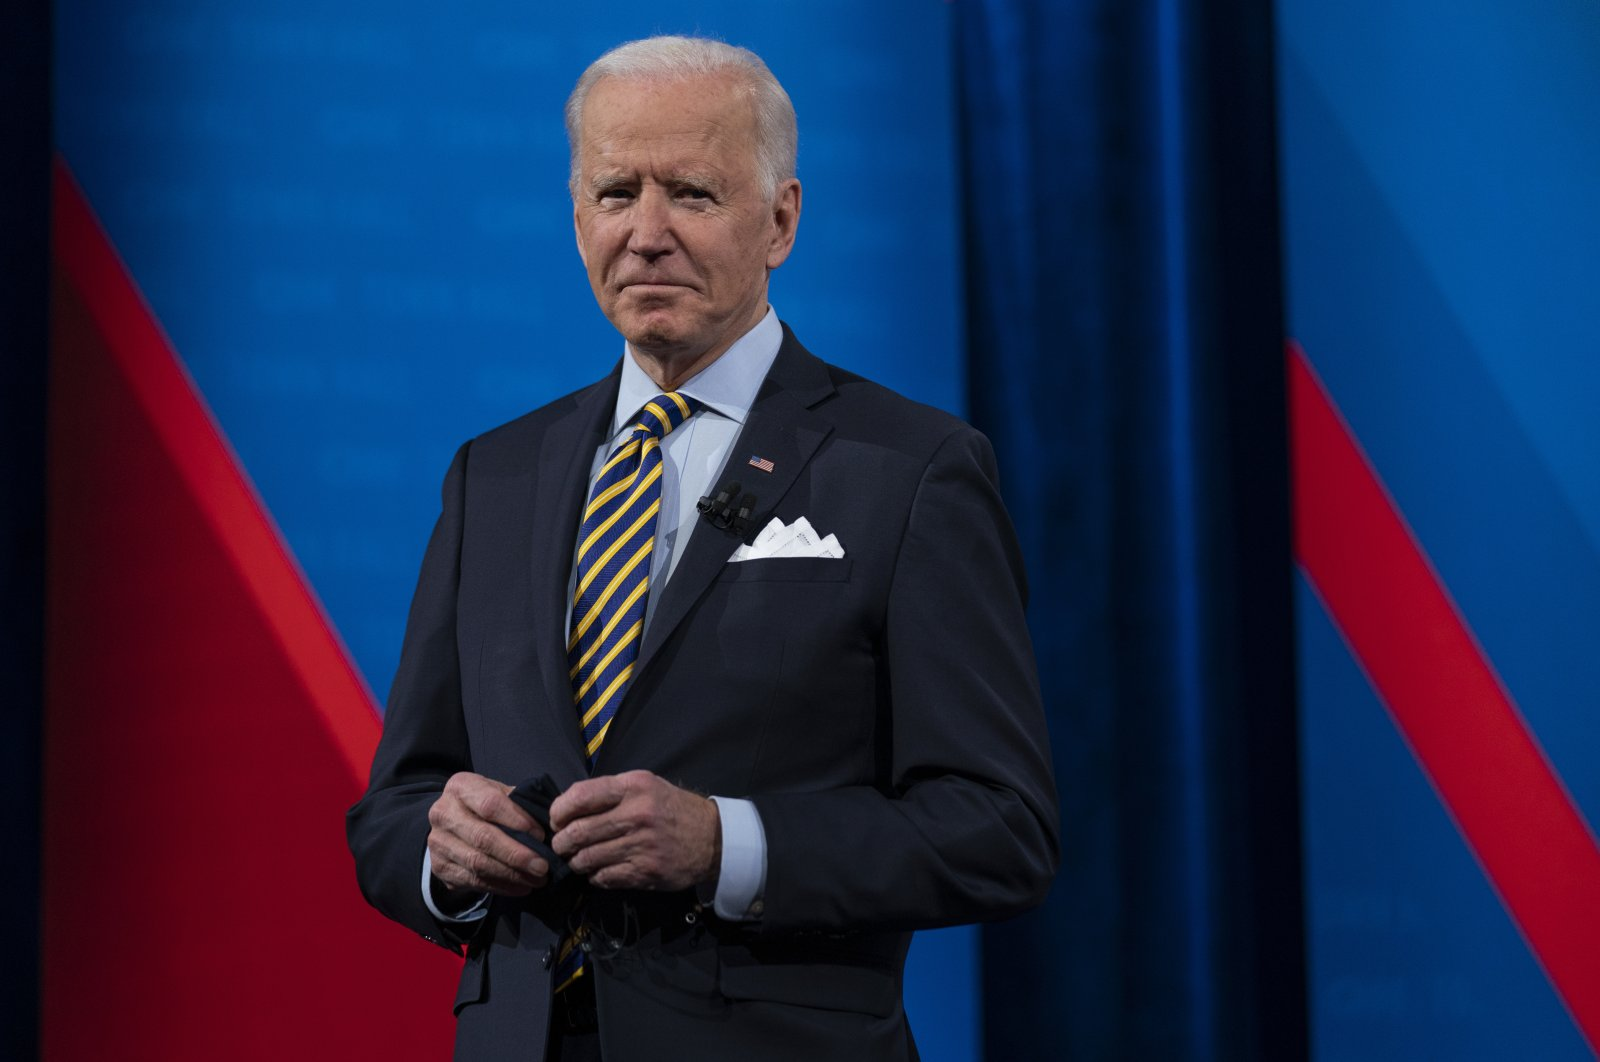 U.S. President Joe Biden talks with audience members as he waits for a commercial break to end during a televised town hall event at Pabst Theater, in Milwaukee, Wisconsin, U.S., Feb. 16, 2021. (AP Photo)